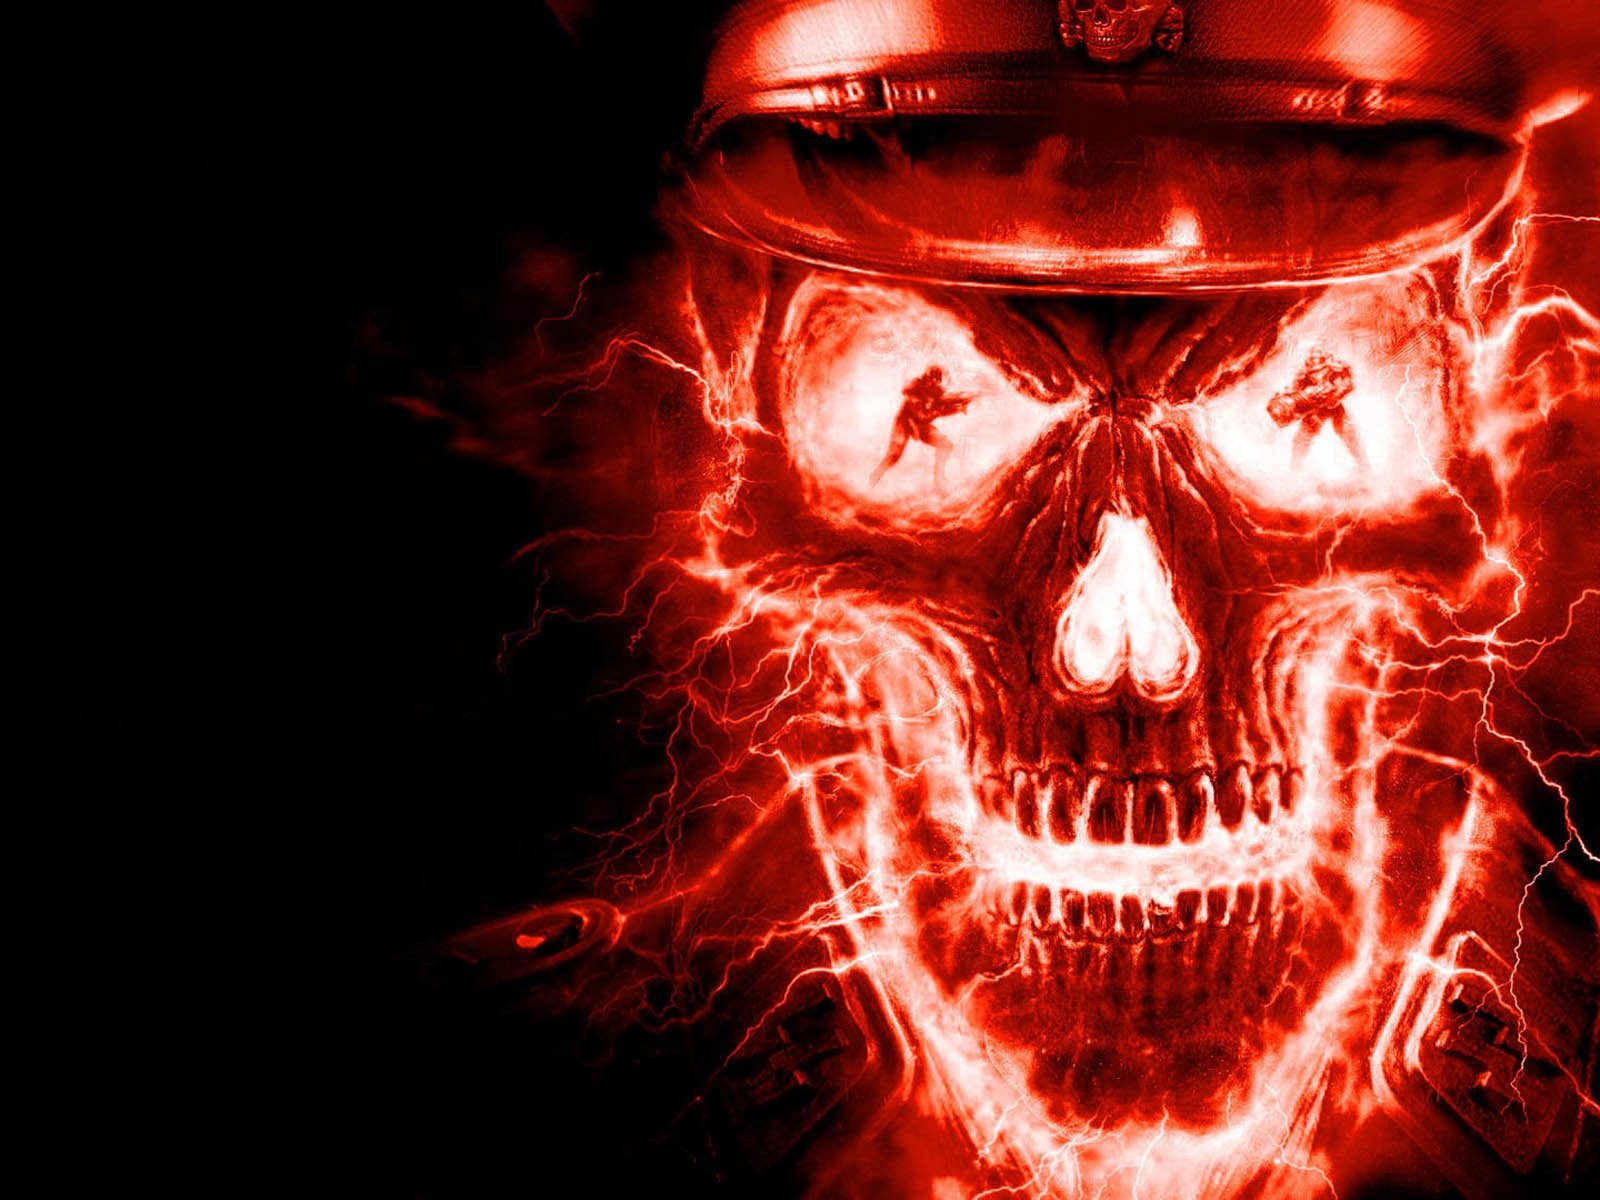 Skull Wallpapers Skull Desktop Wallpapers Skull Desktop Backgrounds 1600x1200